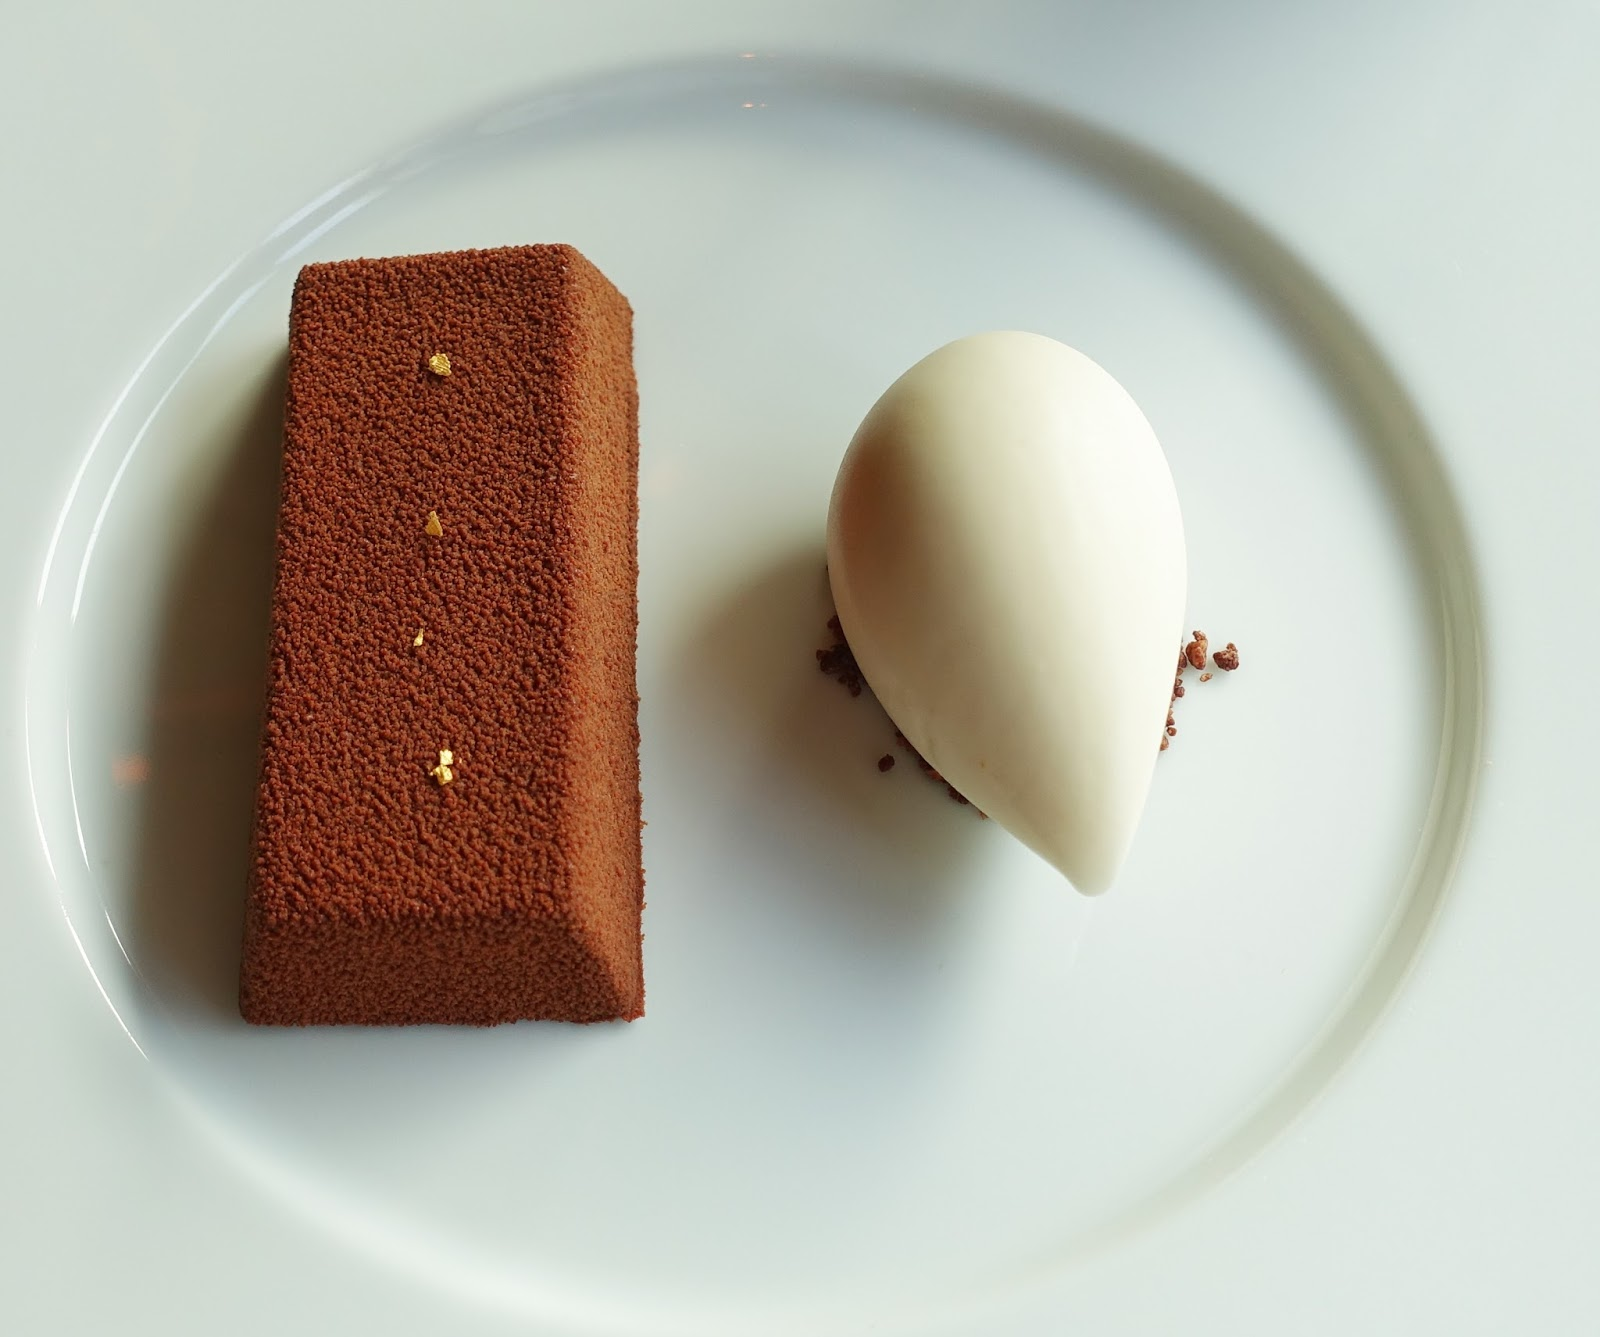 One of the original puddings at Dinner by Heston, Chocolate Bar with passion fruit jam and ginger ice cream